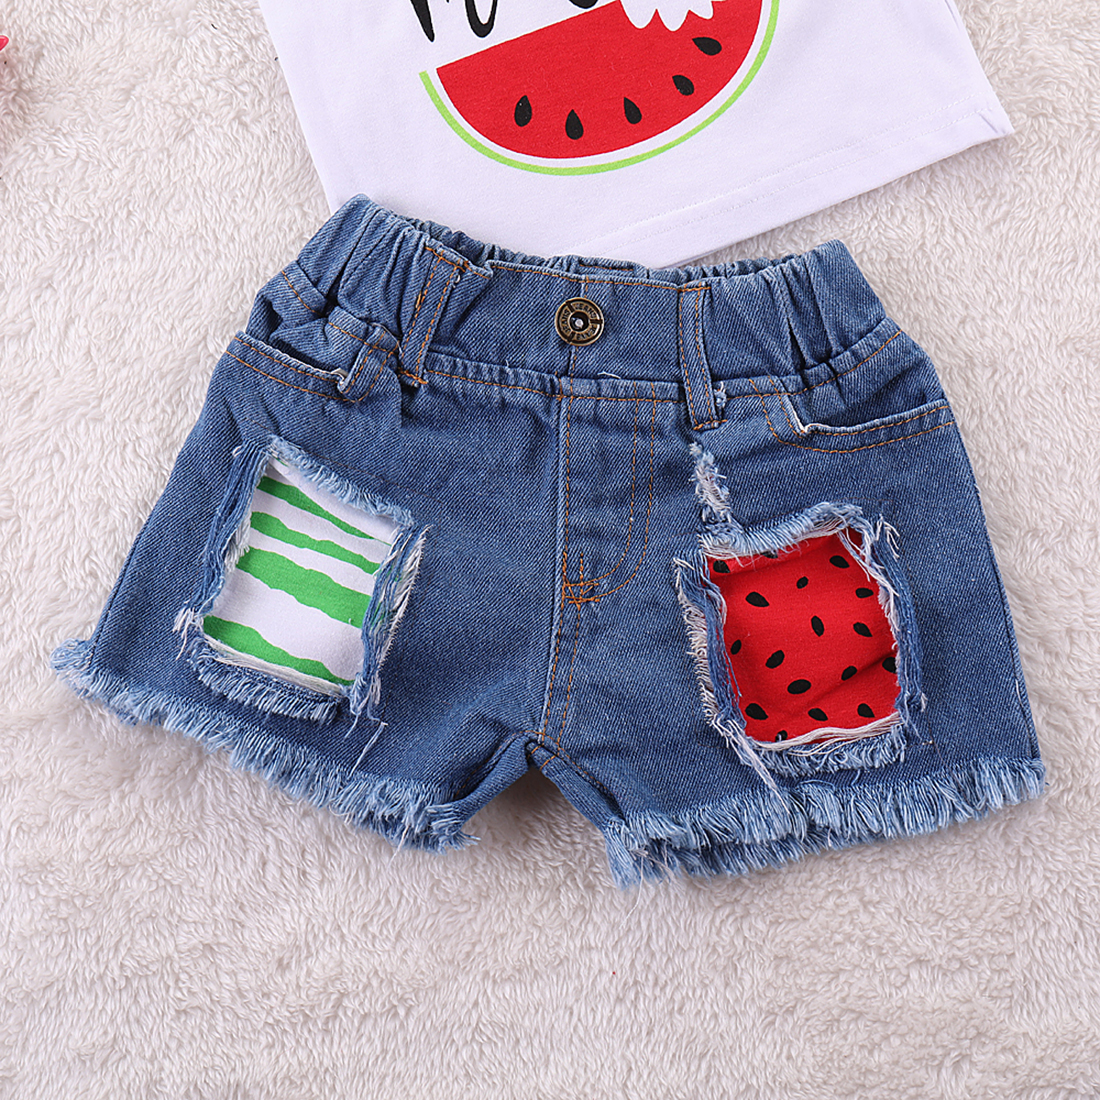 61989cef6 Fashion New Toddler Kids Baby Girl Sleeveless Watermelon Vest Tops+Ripped  Denim Shorts Jeans 2PCS Outfits Summer Clothes Set-in Clothing Sets from  Mother ...